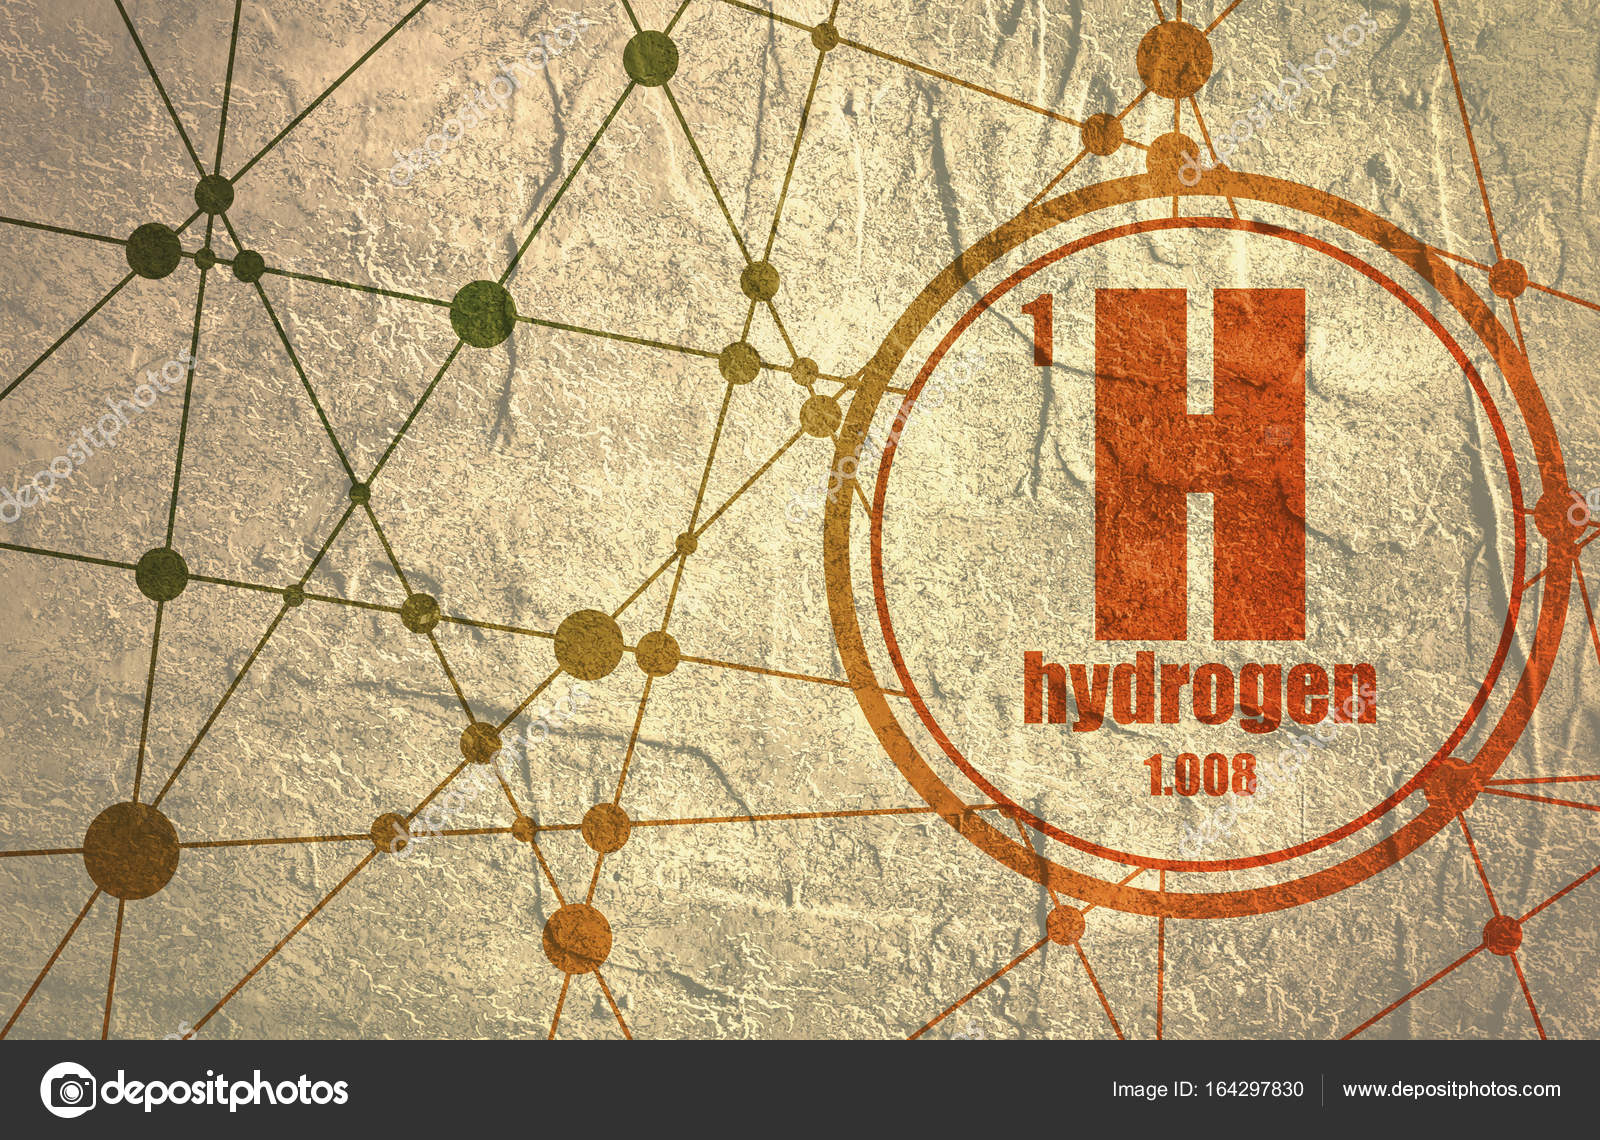 Hydrogen chemical element stock photo jegasra 164297830 hydrogen chemical element sign with atomic number and atomic weight chemical element of periodic table molecule and communication background urtaz Gallery